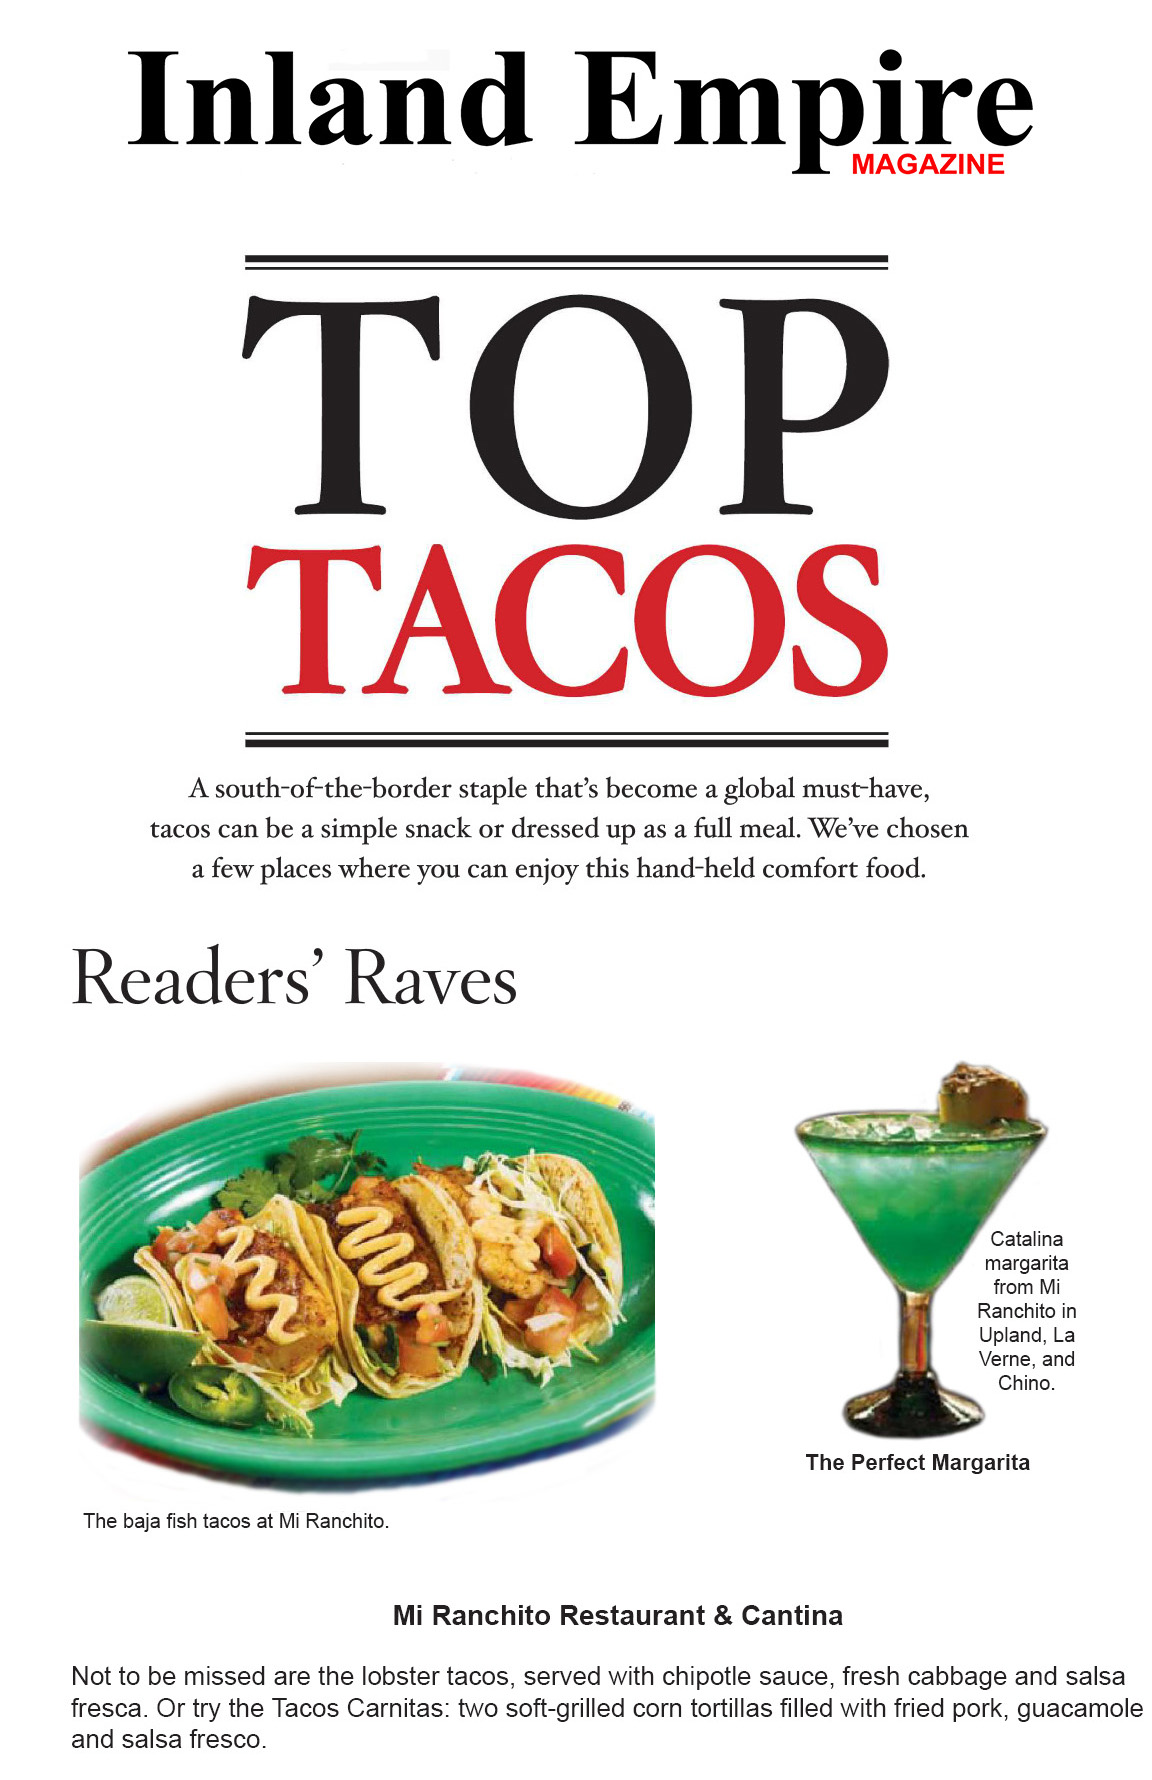 Inland Empire Magazine : Top Tacos - A south-of-the-border staple that's become a globla must-have, tacos can be a simple snack or dressed up as a full meal. We've chosen a few places where you can enjoy this hand-held comfort food.  Readers' Raves - The baja fish tacos at Mi Ranchito.  Mi Ranchito Restaurant & Cantina -  Not to be missed are the lobster tacos, served with chipotle sauce, fresh cabbage, and salsa fresca. Or try the Tacos Carnitas; two soft-grilled corn tortillas filled with fried pork, guacamole, and salsa fresco.